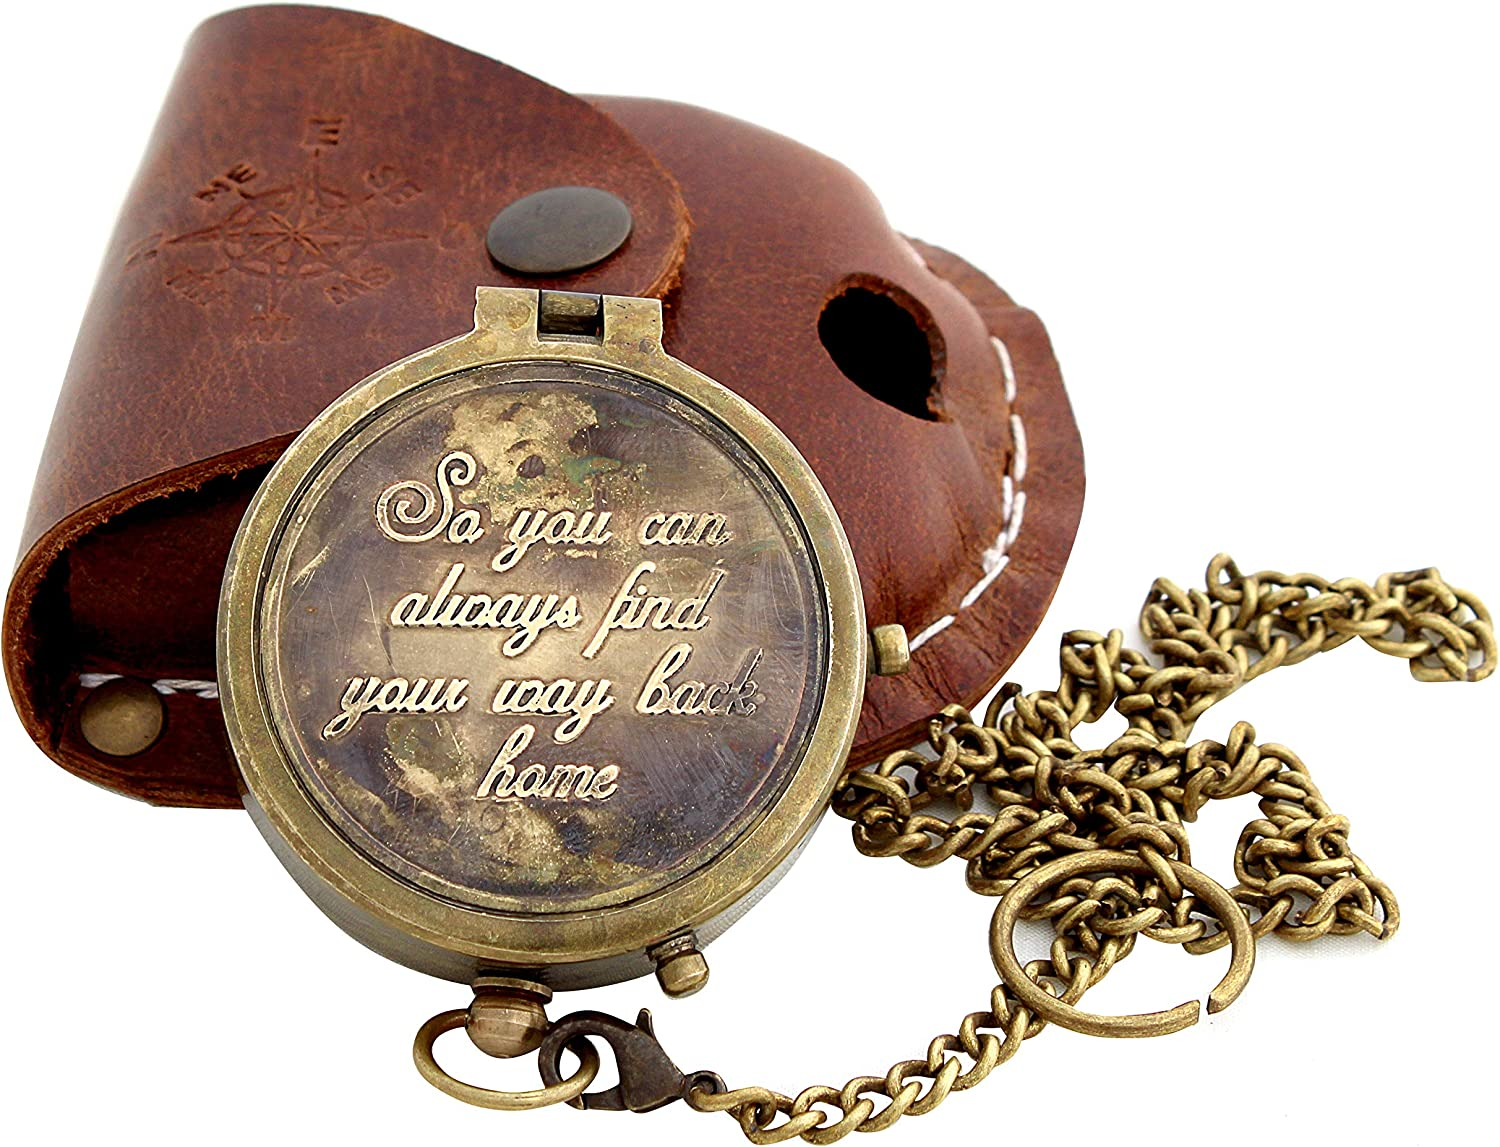 '' So You Can Always Find Your Way Back Home'' Engraved Compass for Confirmation Gifts, Baptism Gifts, Best Easter, Birthday Gifts, Graduation Gifts, Wedding Gifts, Religious Gifts for Men